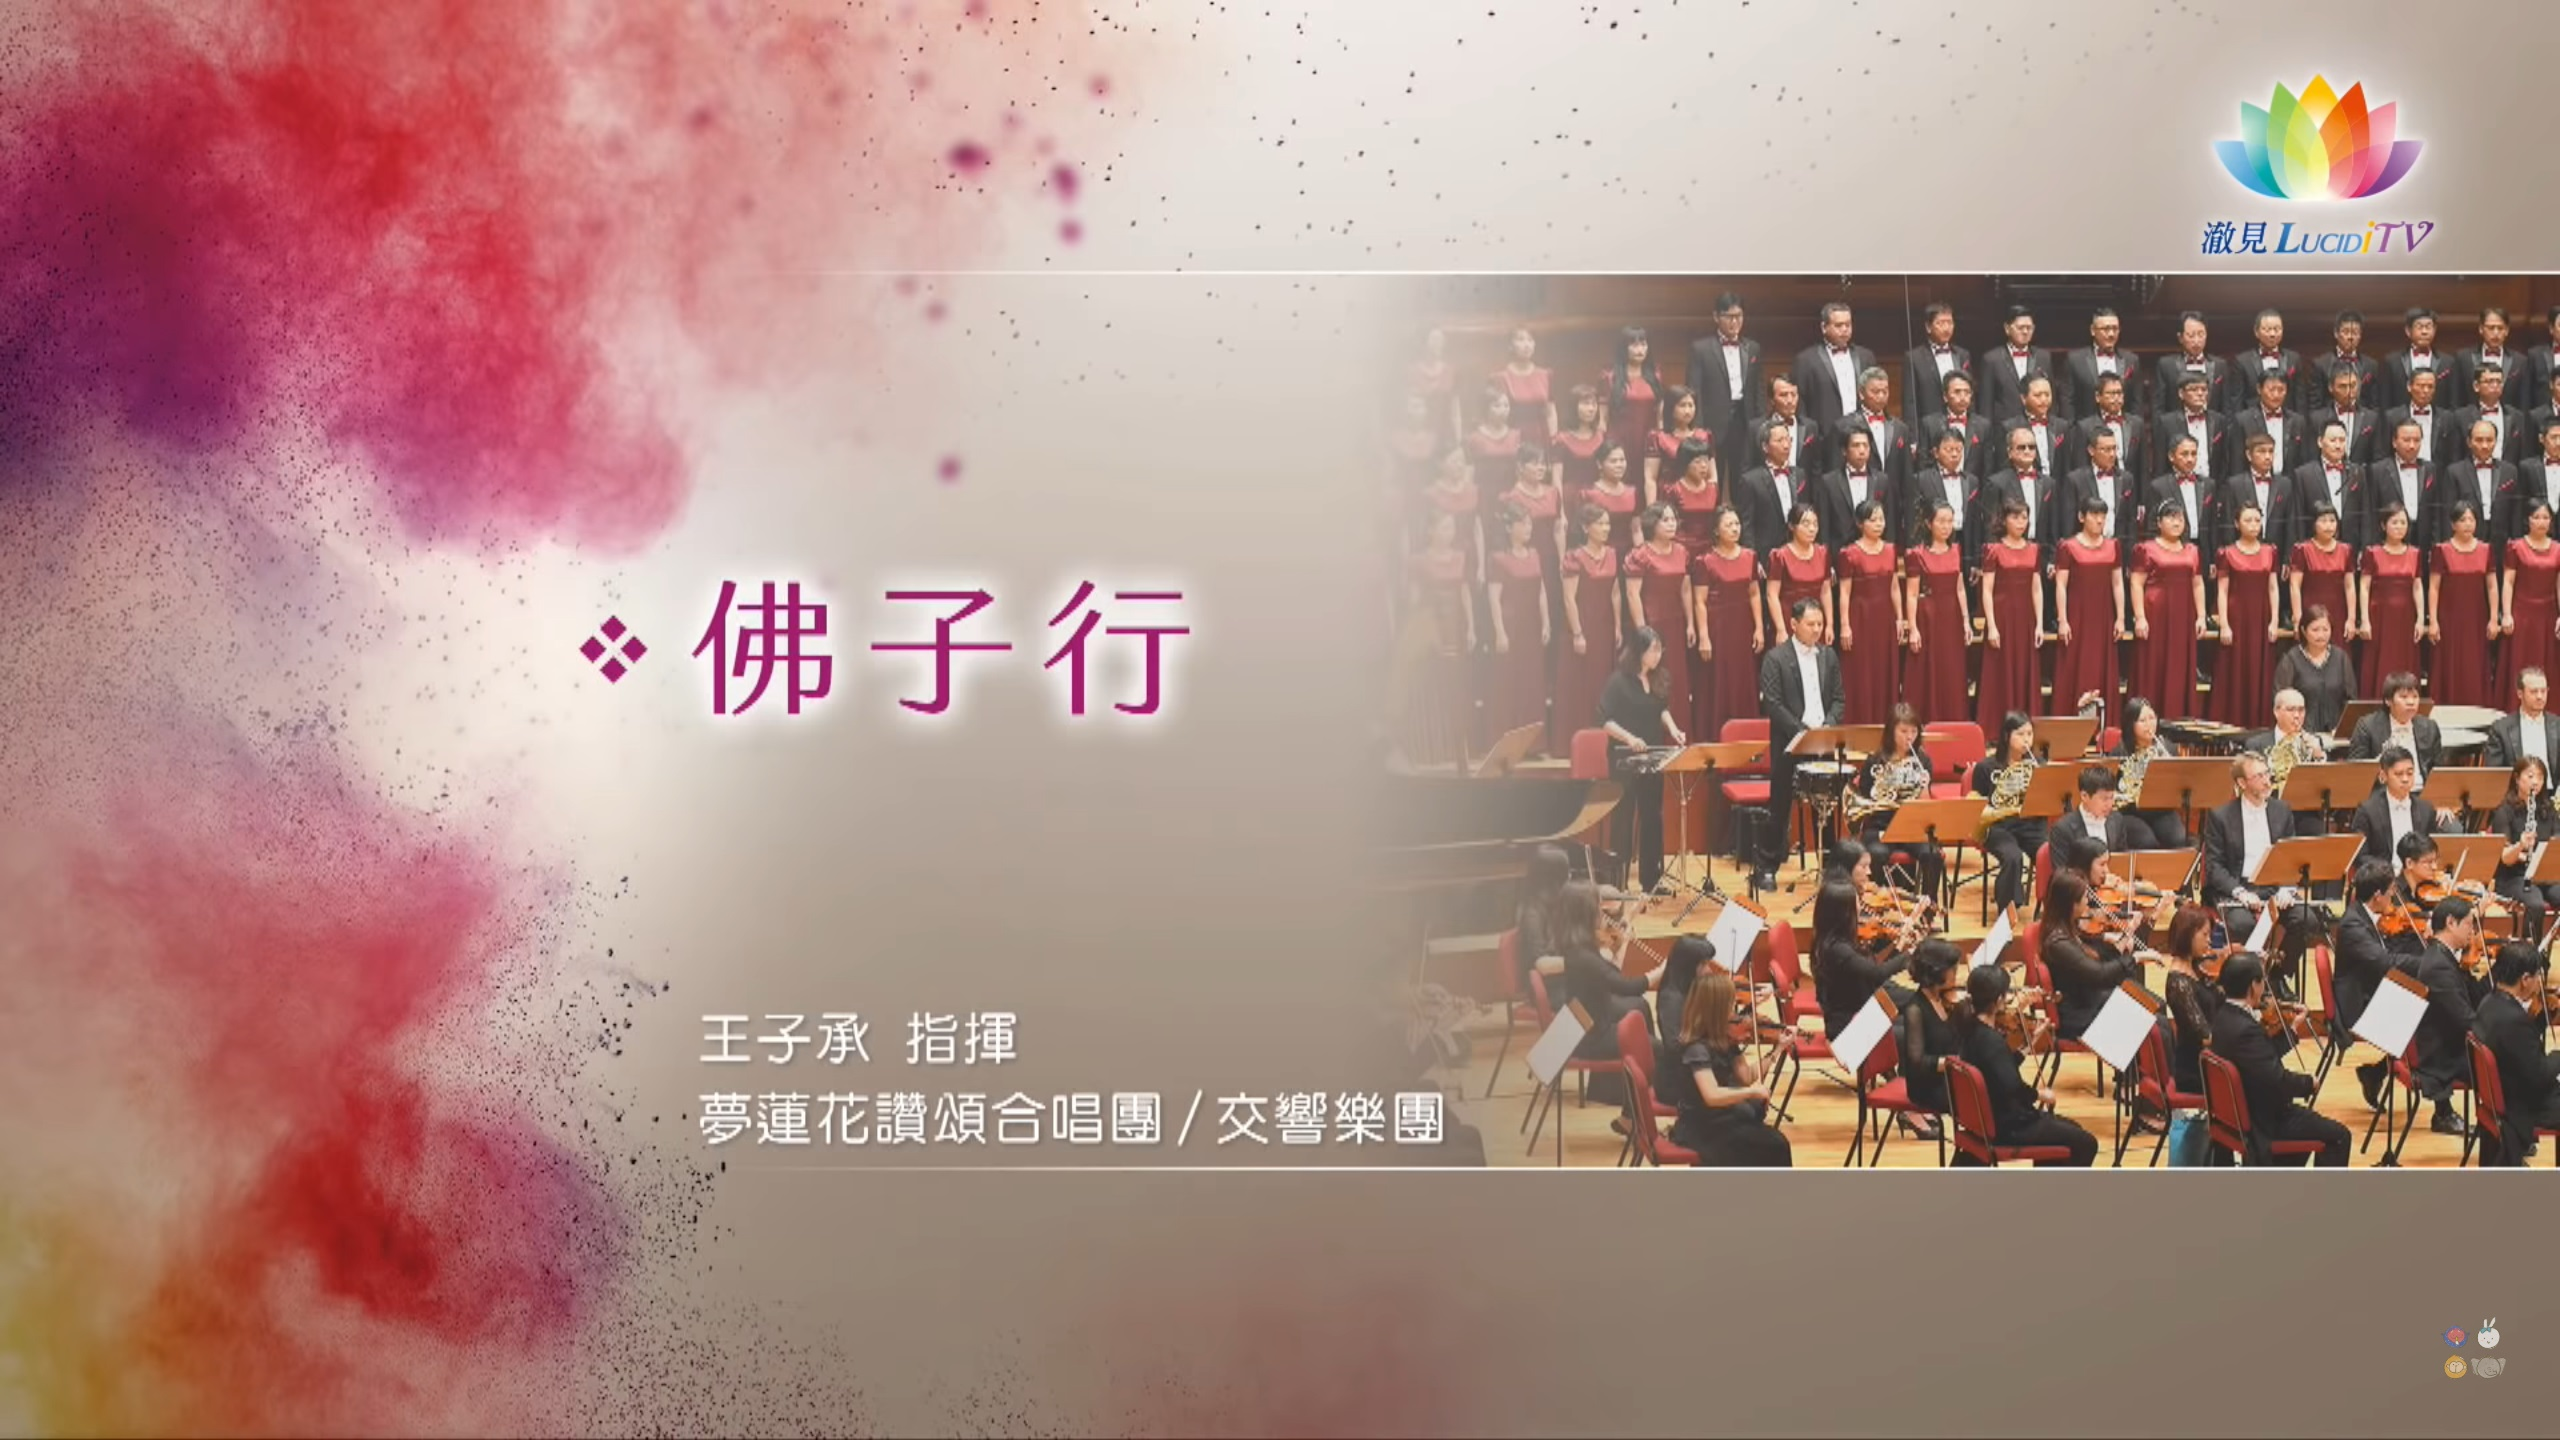 HEARTSTRINGS OF PRAISE:《在這個時候:祝福您》IN THIS MOMENT: A GIFT OF MELODY 14.08.2020